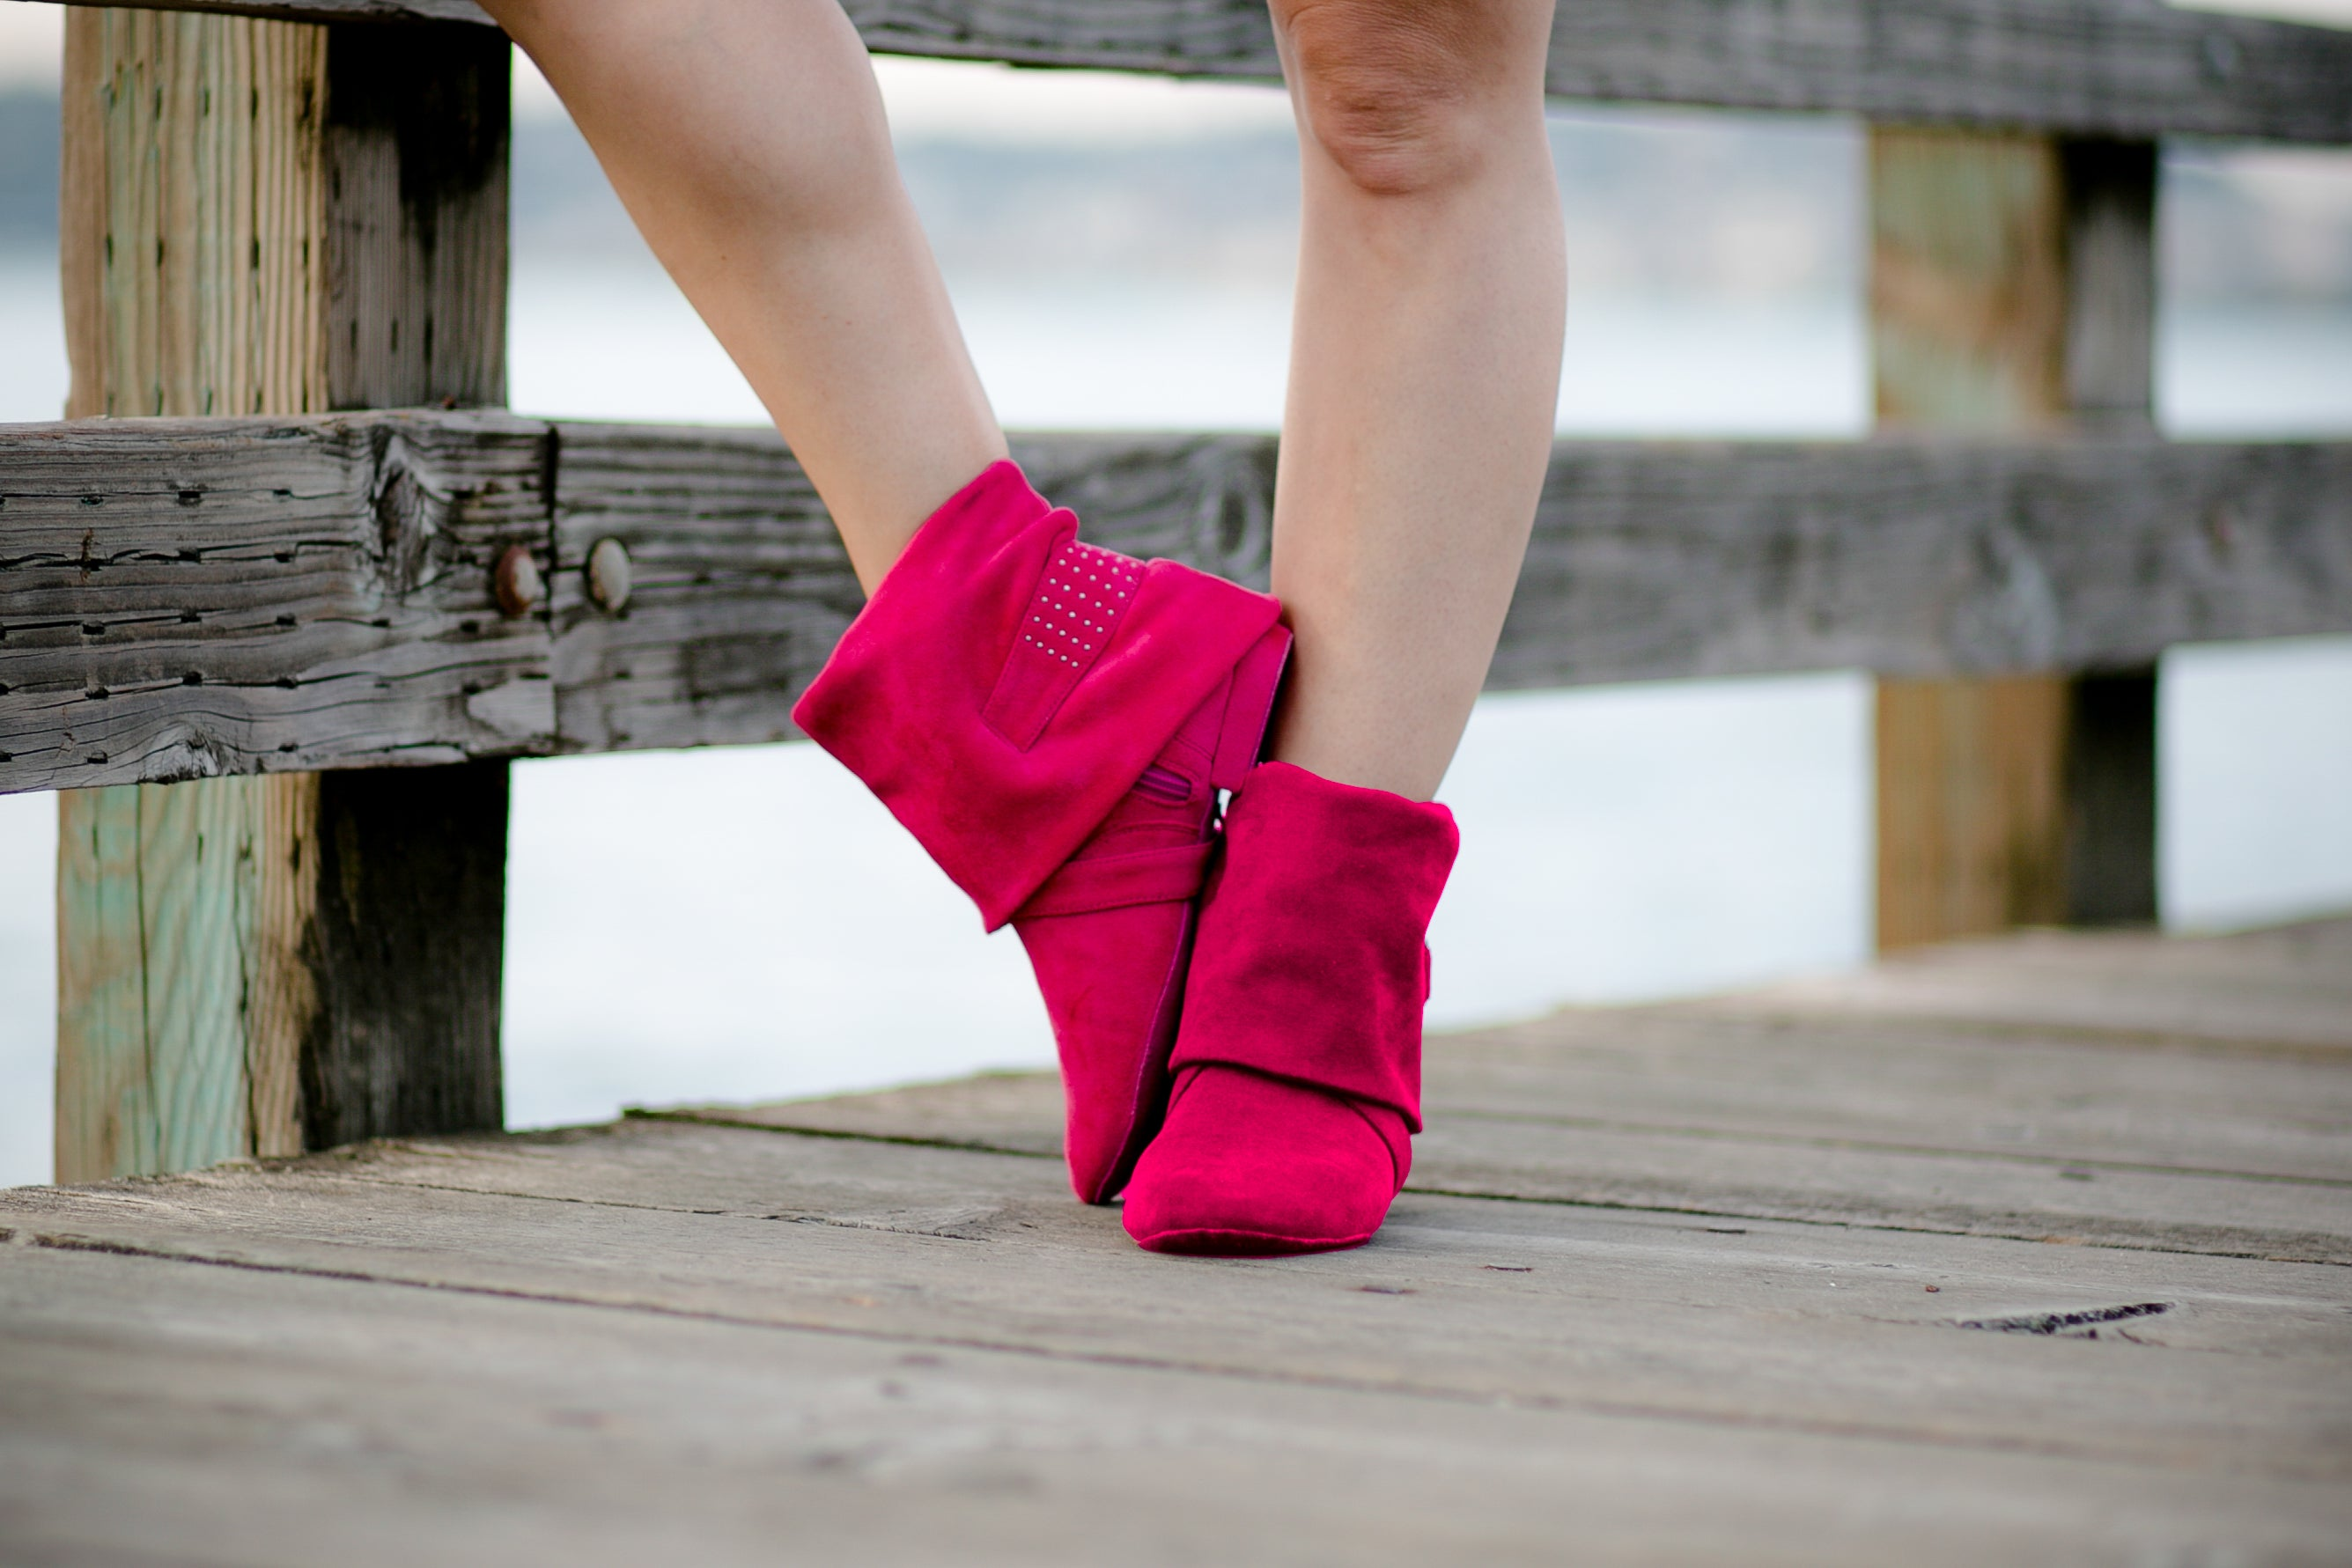 Aurora Dance Boots fuchsia pair with wooden dock background